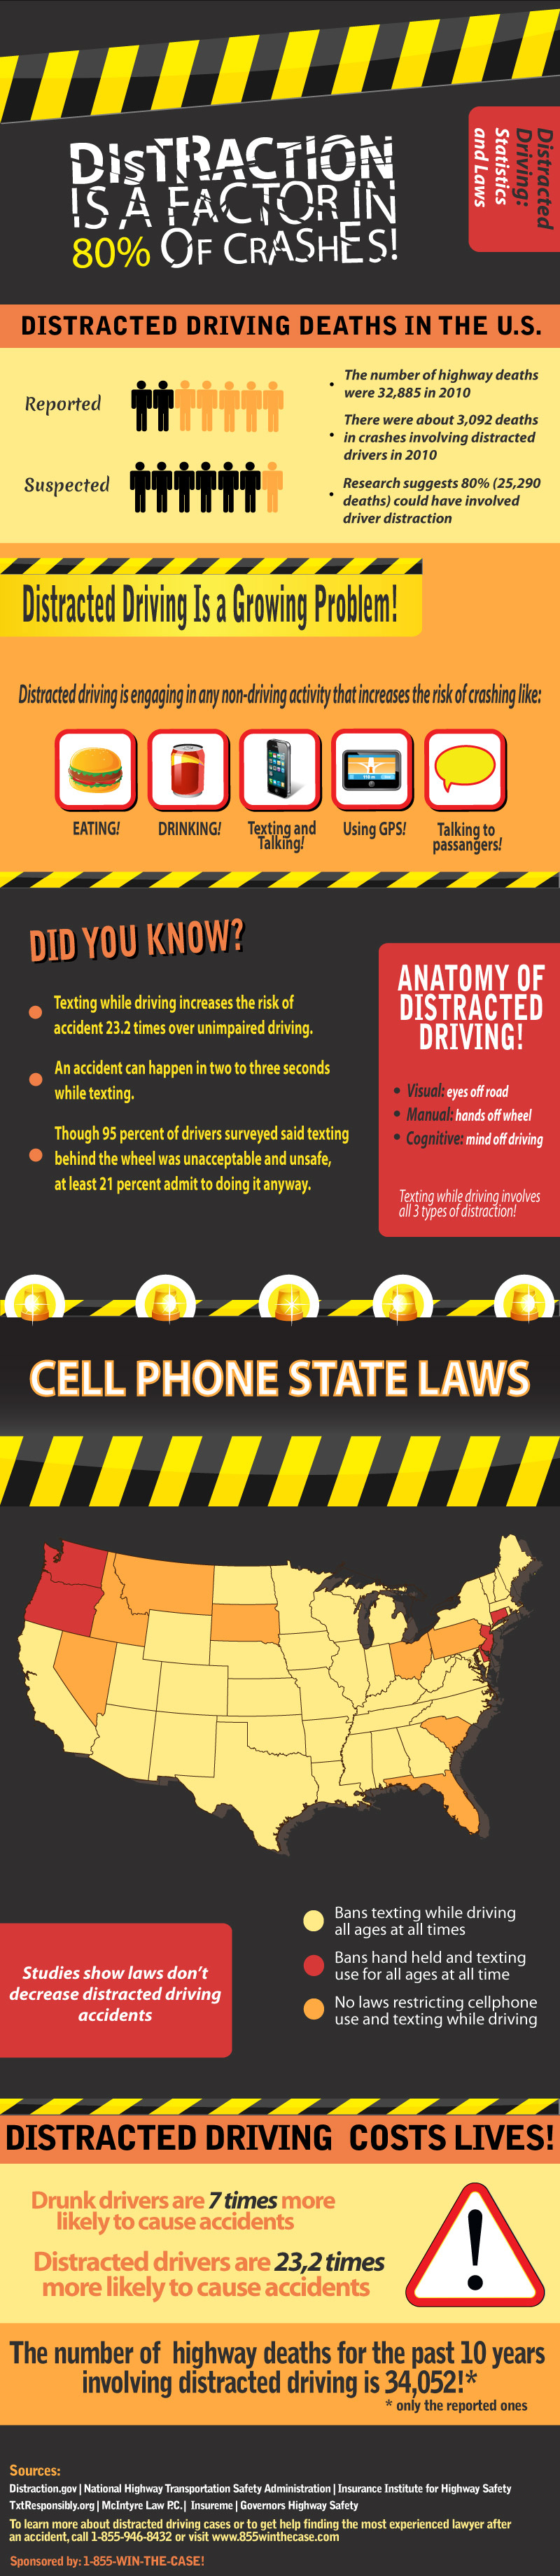 Distracted Driving Effects-Infographic